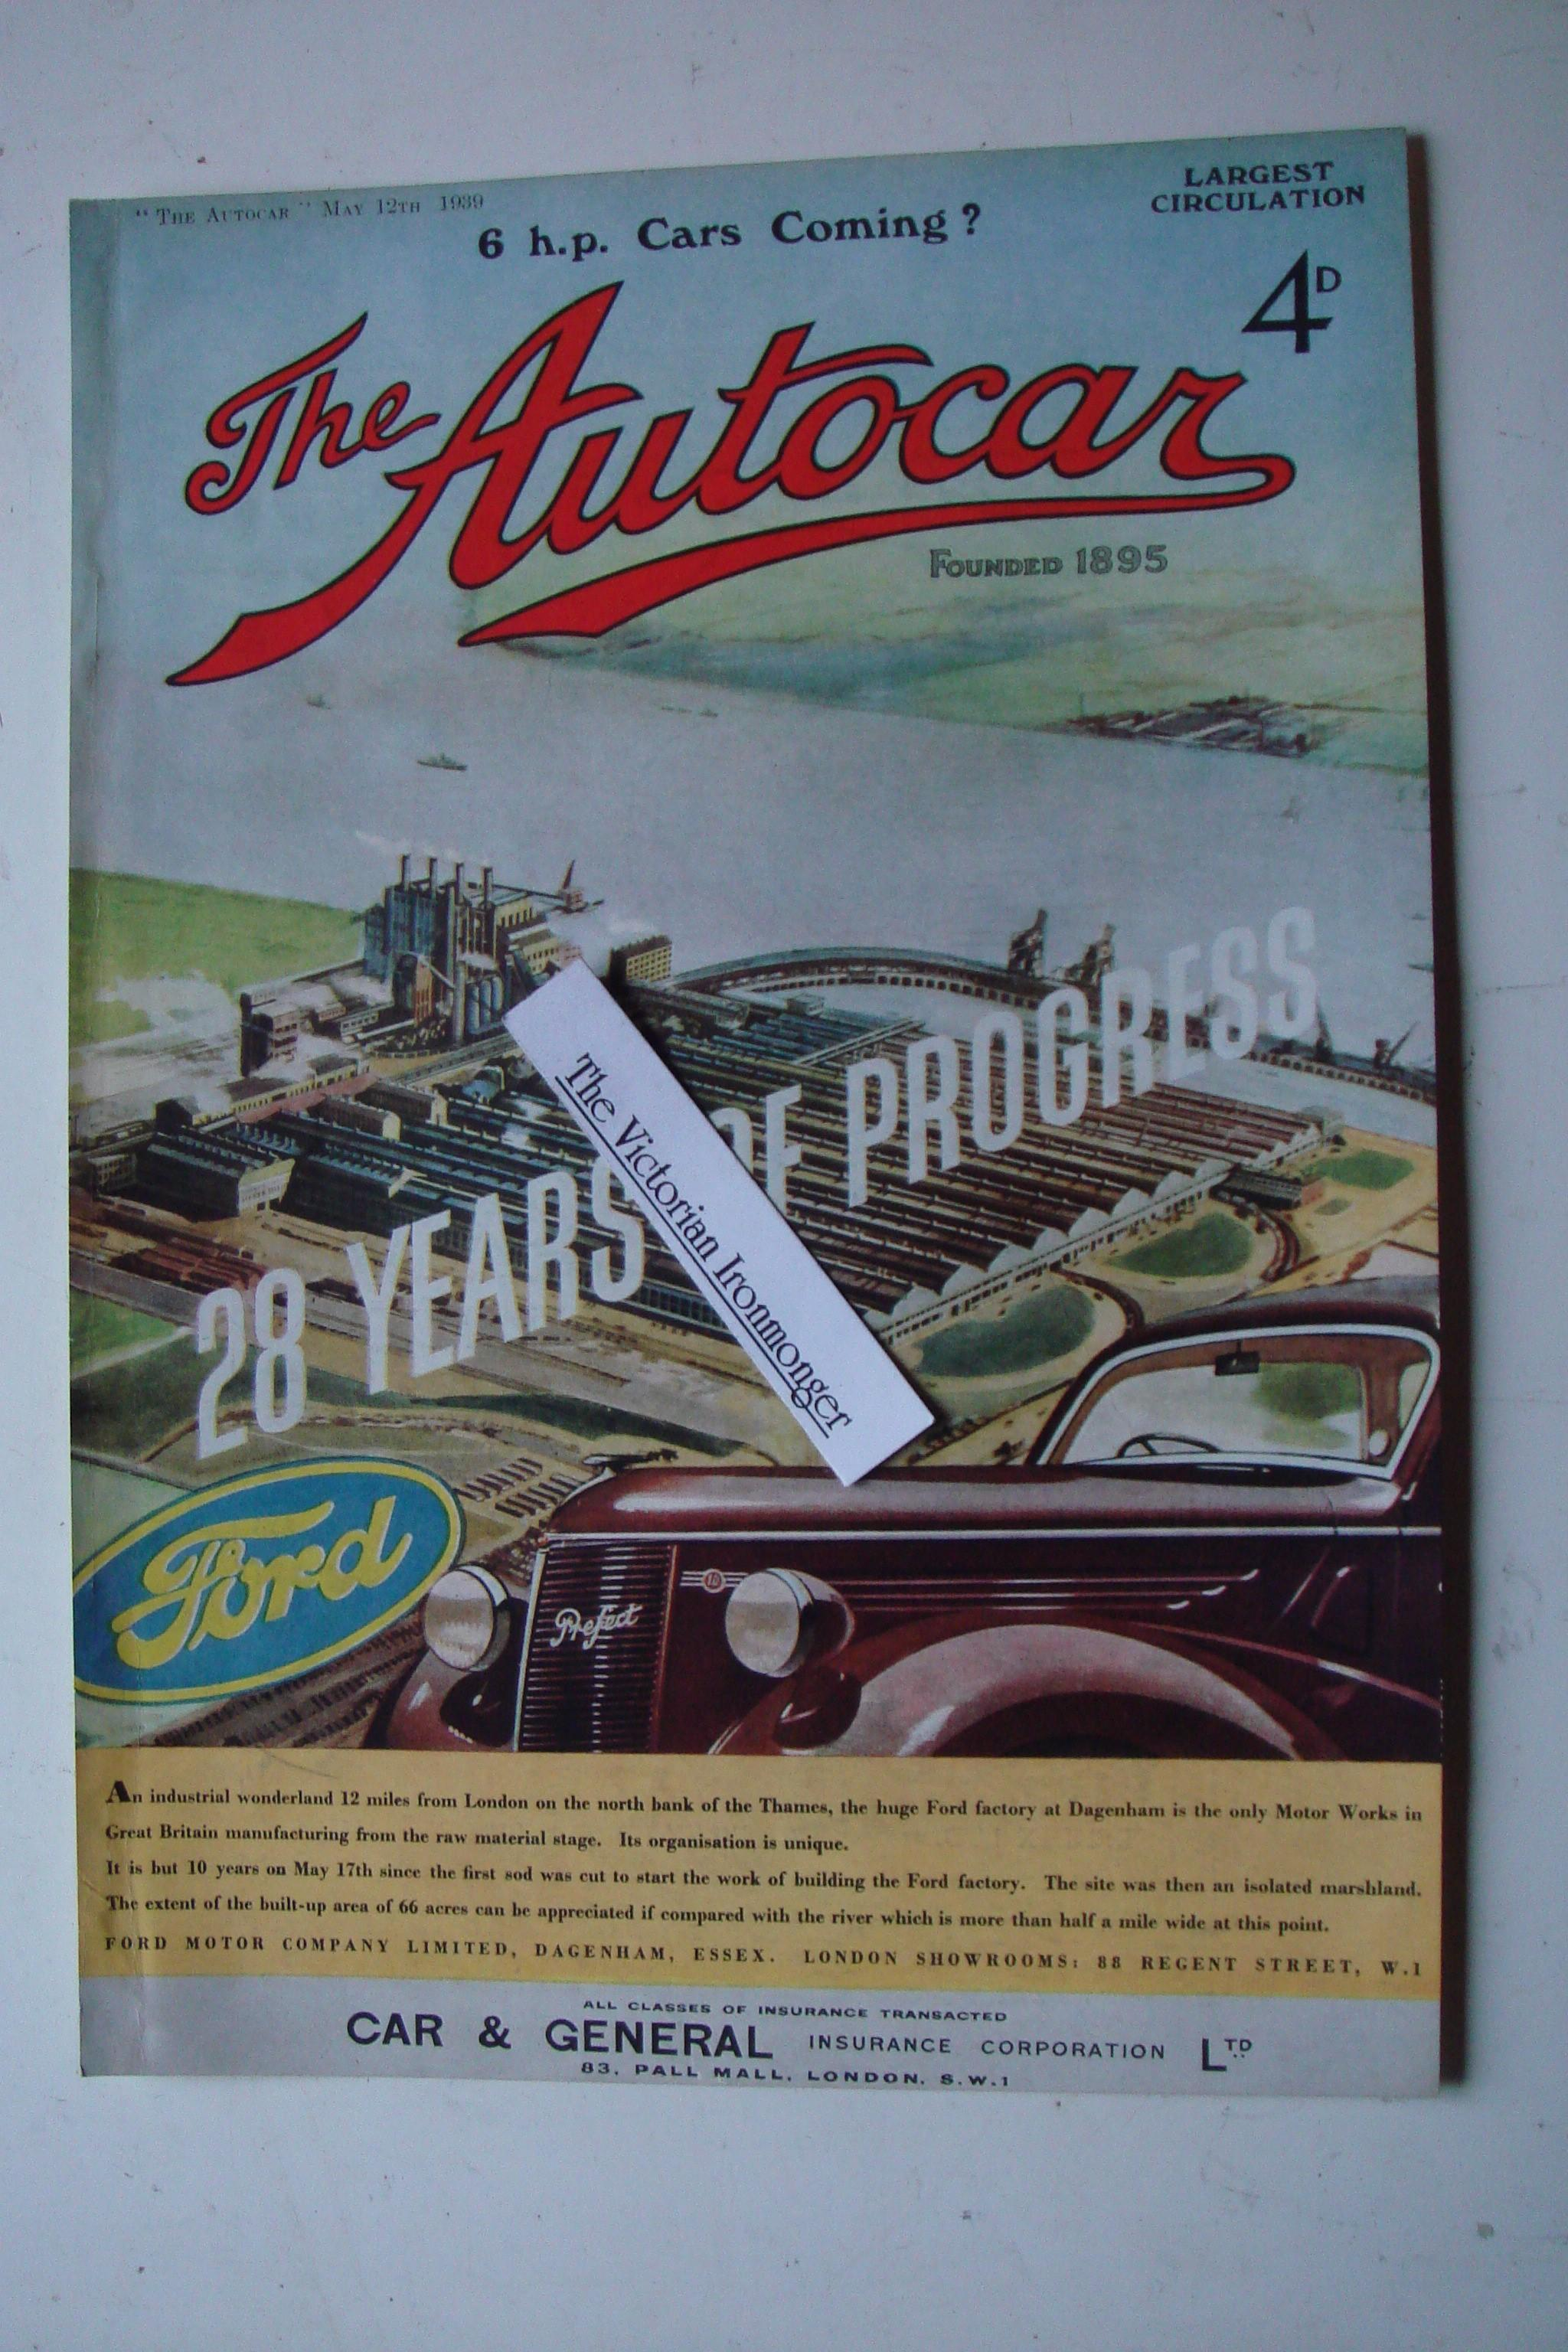 1939 Full Colour Advert for The Ford Ten Prefect Depicting Fords Dagenham Factory